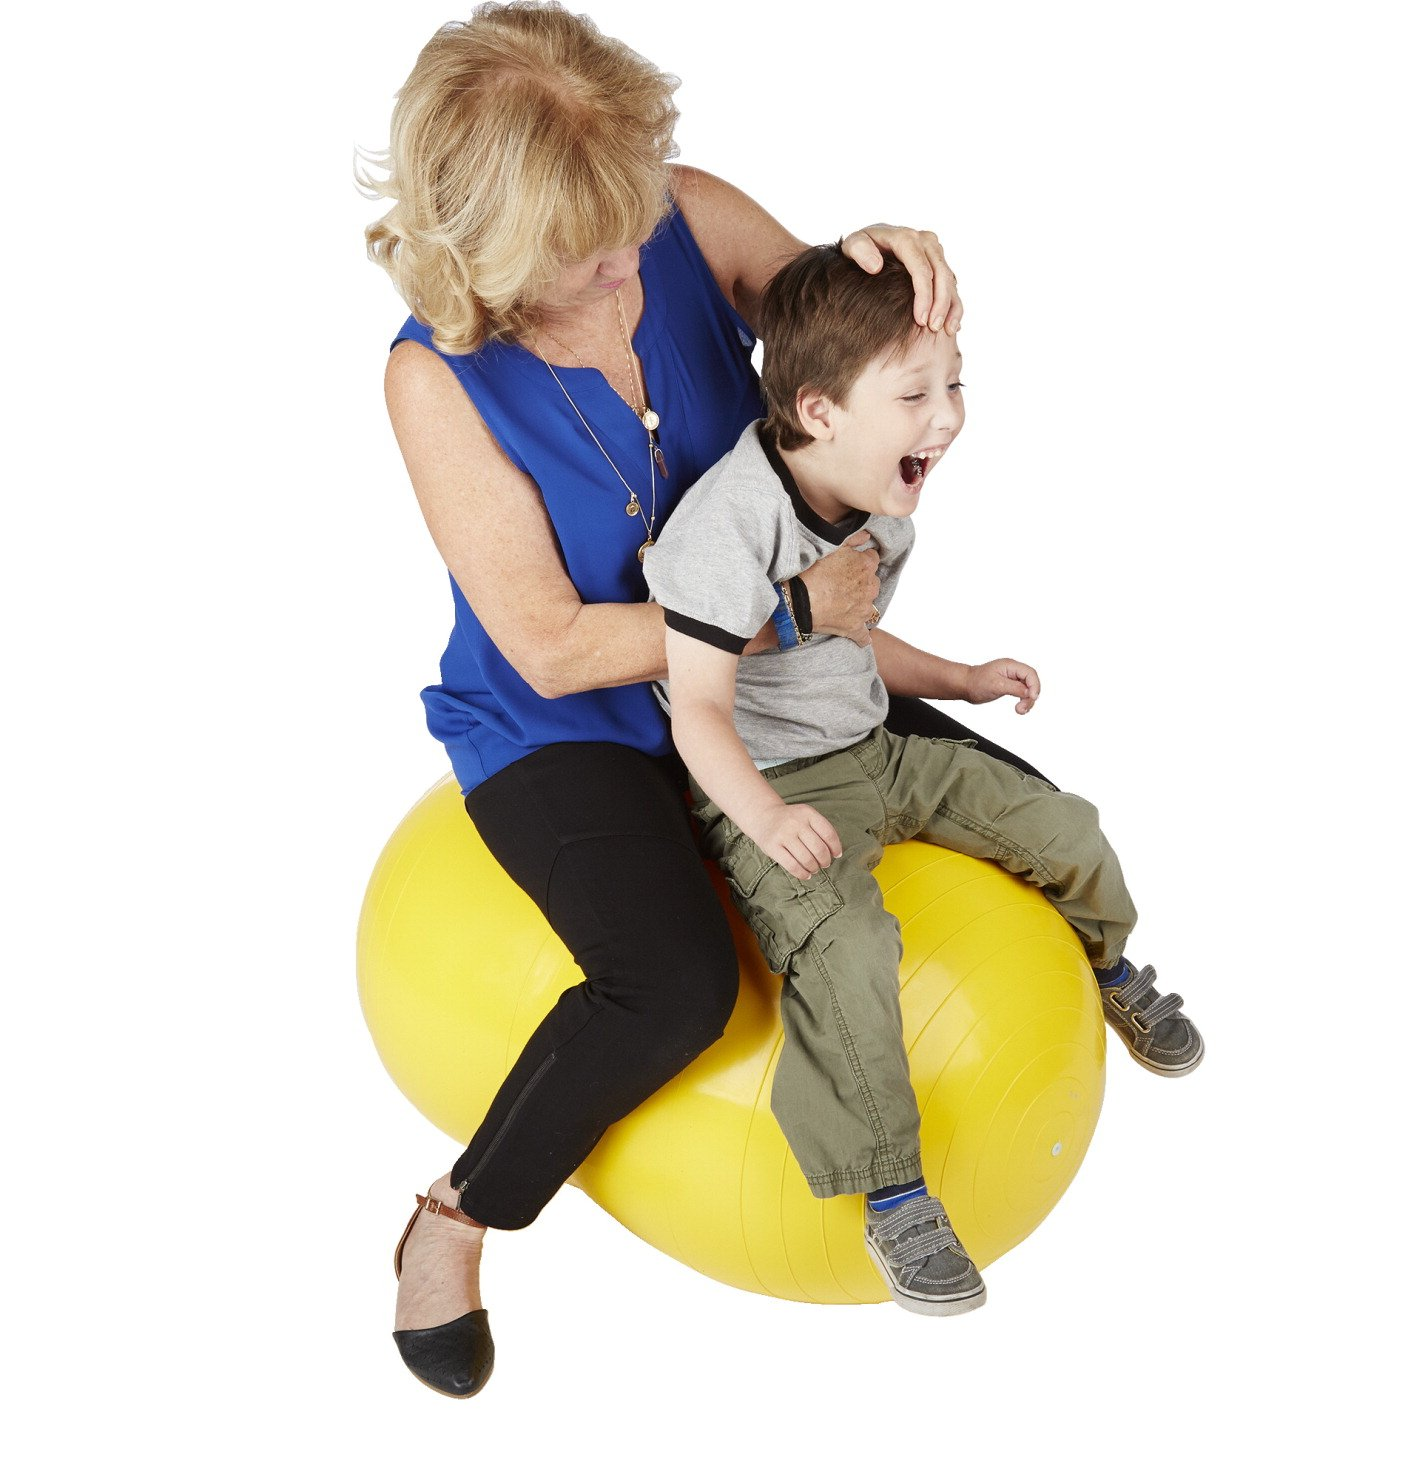 Sportime Physio Roll Exercise Therapy Fitness Ball – 12 Inches – Blue